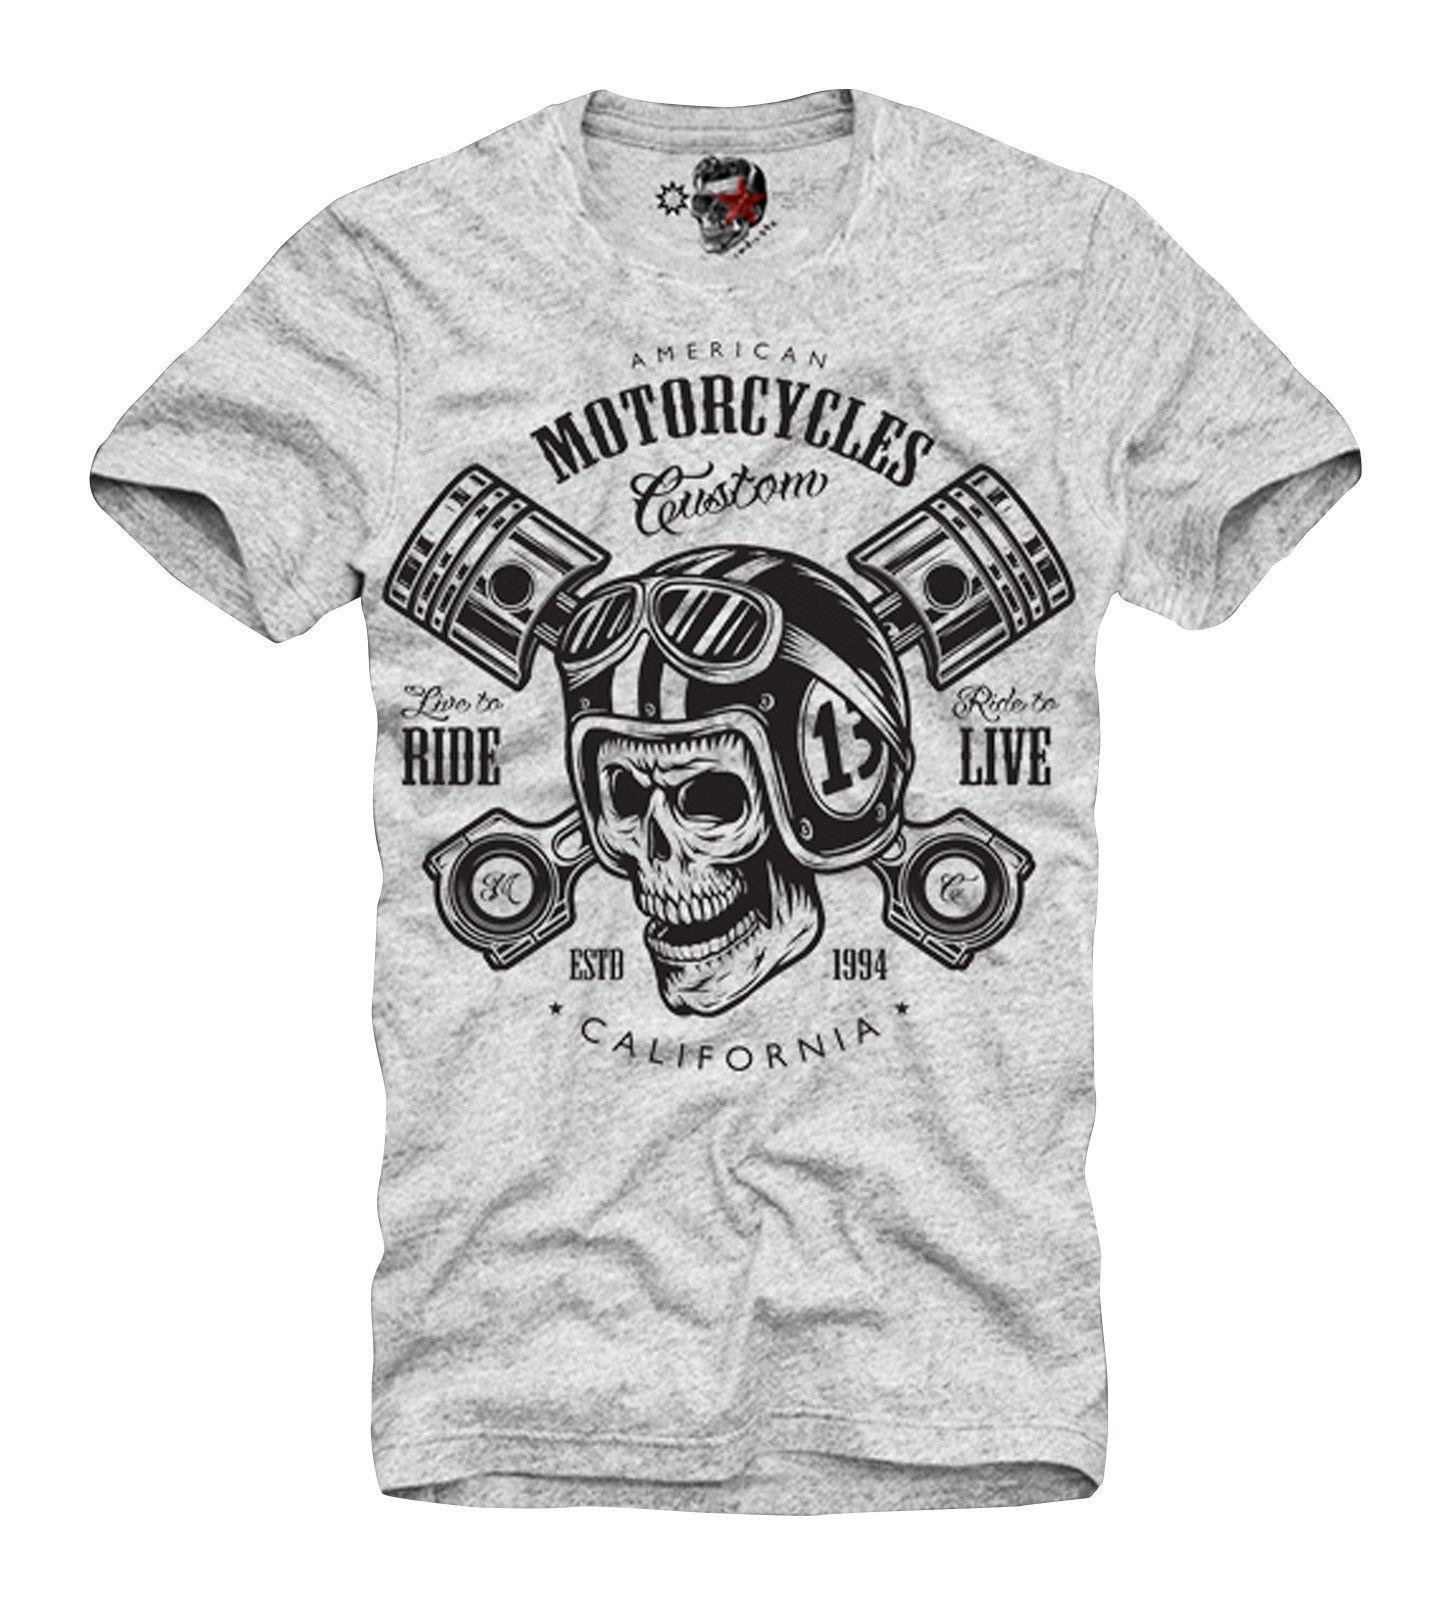 1f33728f E1SYNDICATE T SHIRT VINTAGE CAFE RACER DUCATI TRIUMPH NORTON INDIAN HARLEY  3416 Funny Unisex Casual Tshirt Top Awesome T Shirt Designs Tea Shirts From  ...